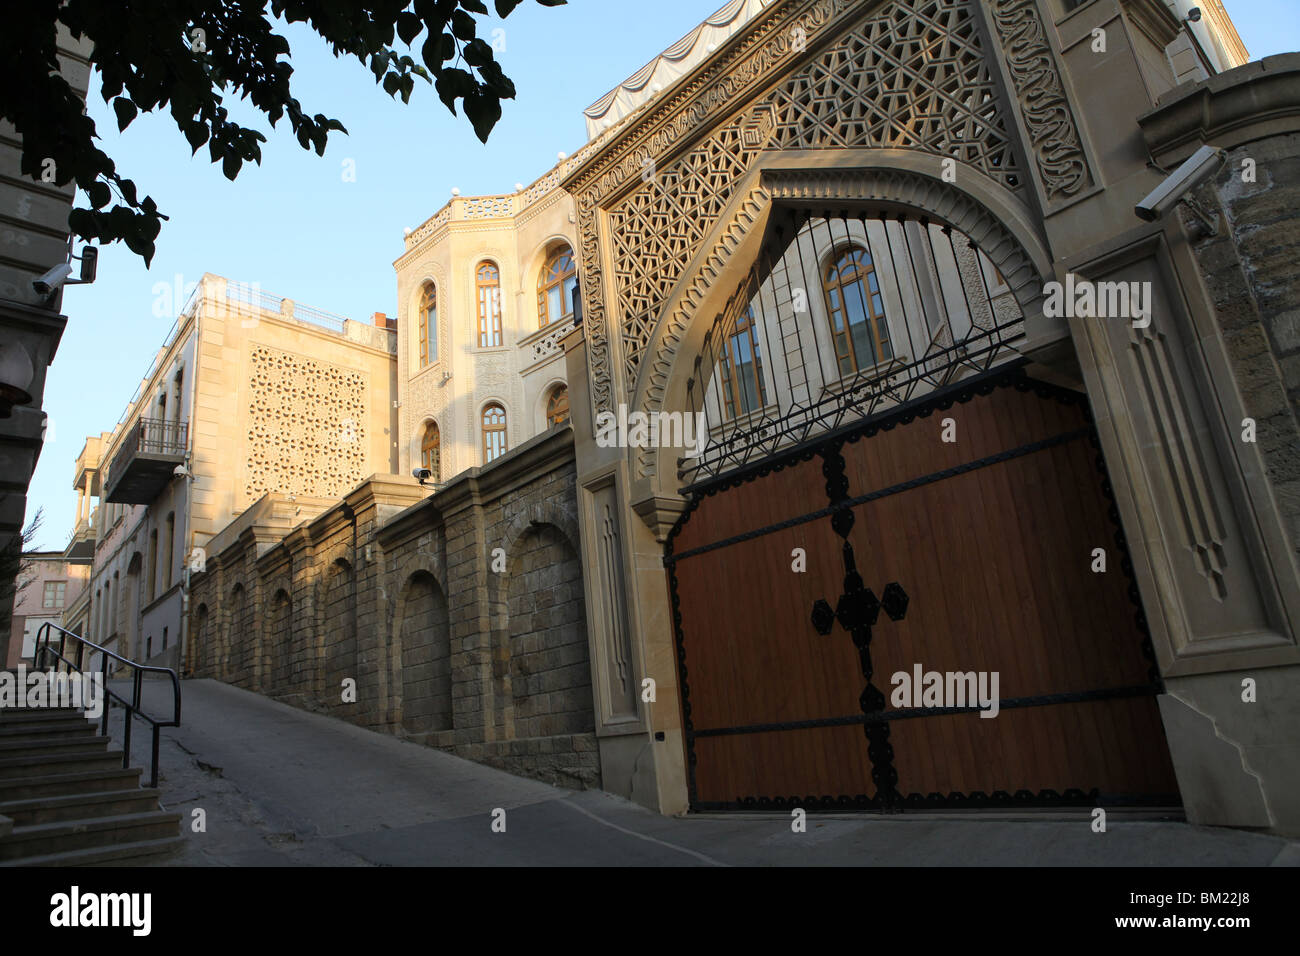 Sunrise in the streets of the historical old walled city of Baku in Azerbaijan, Central Asia. - Stock Image